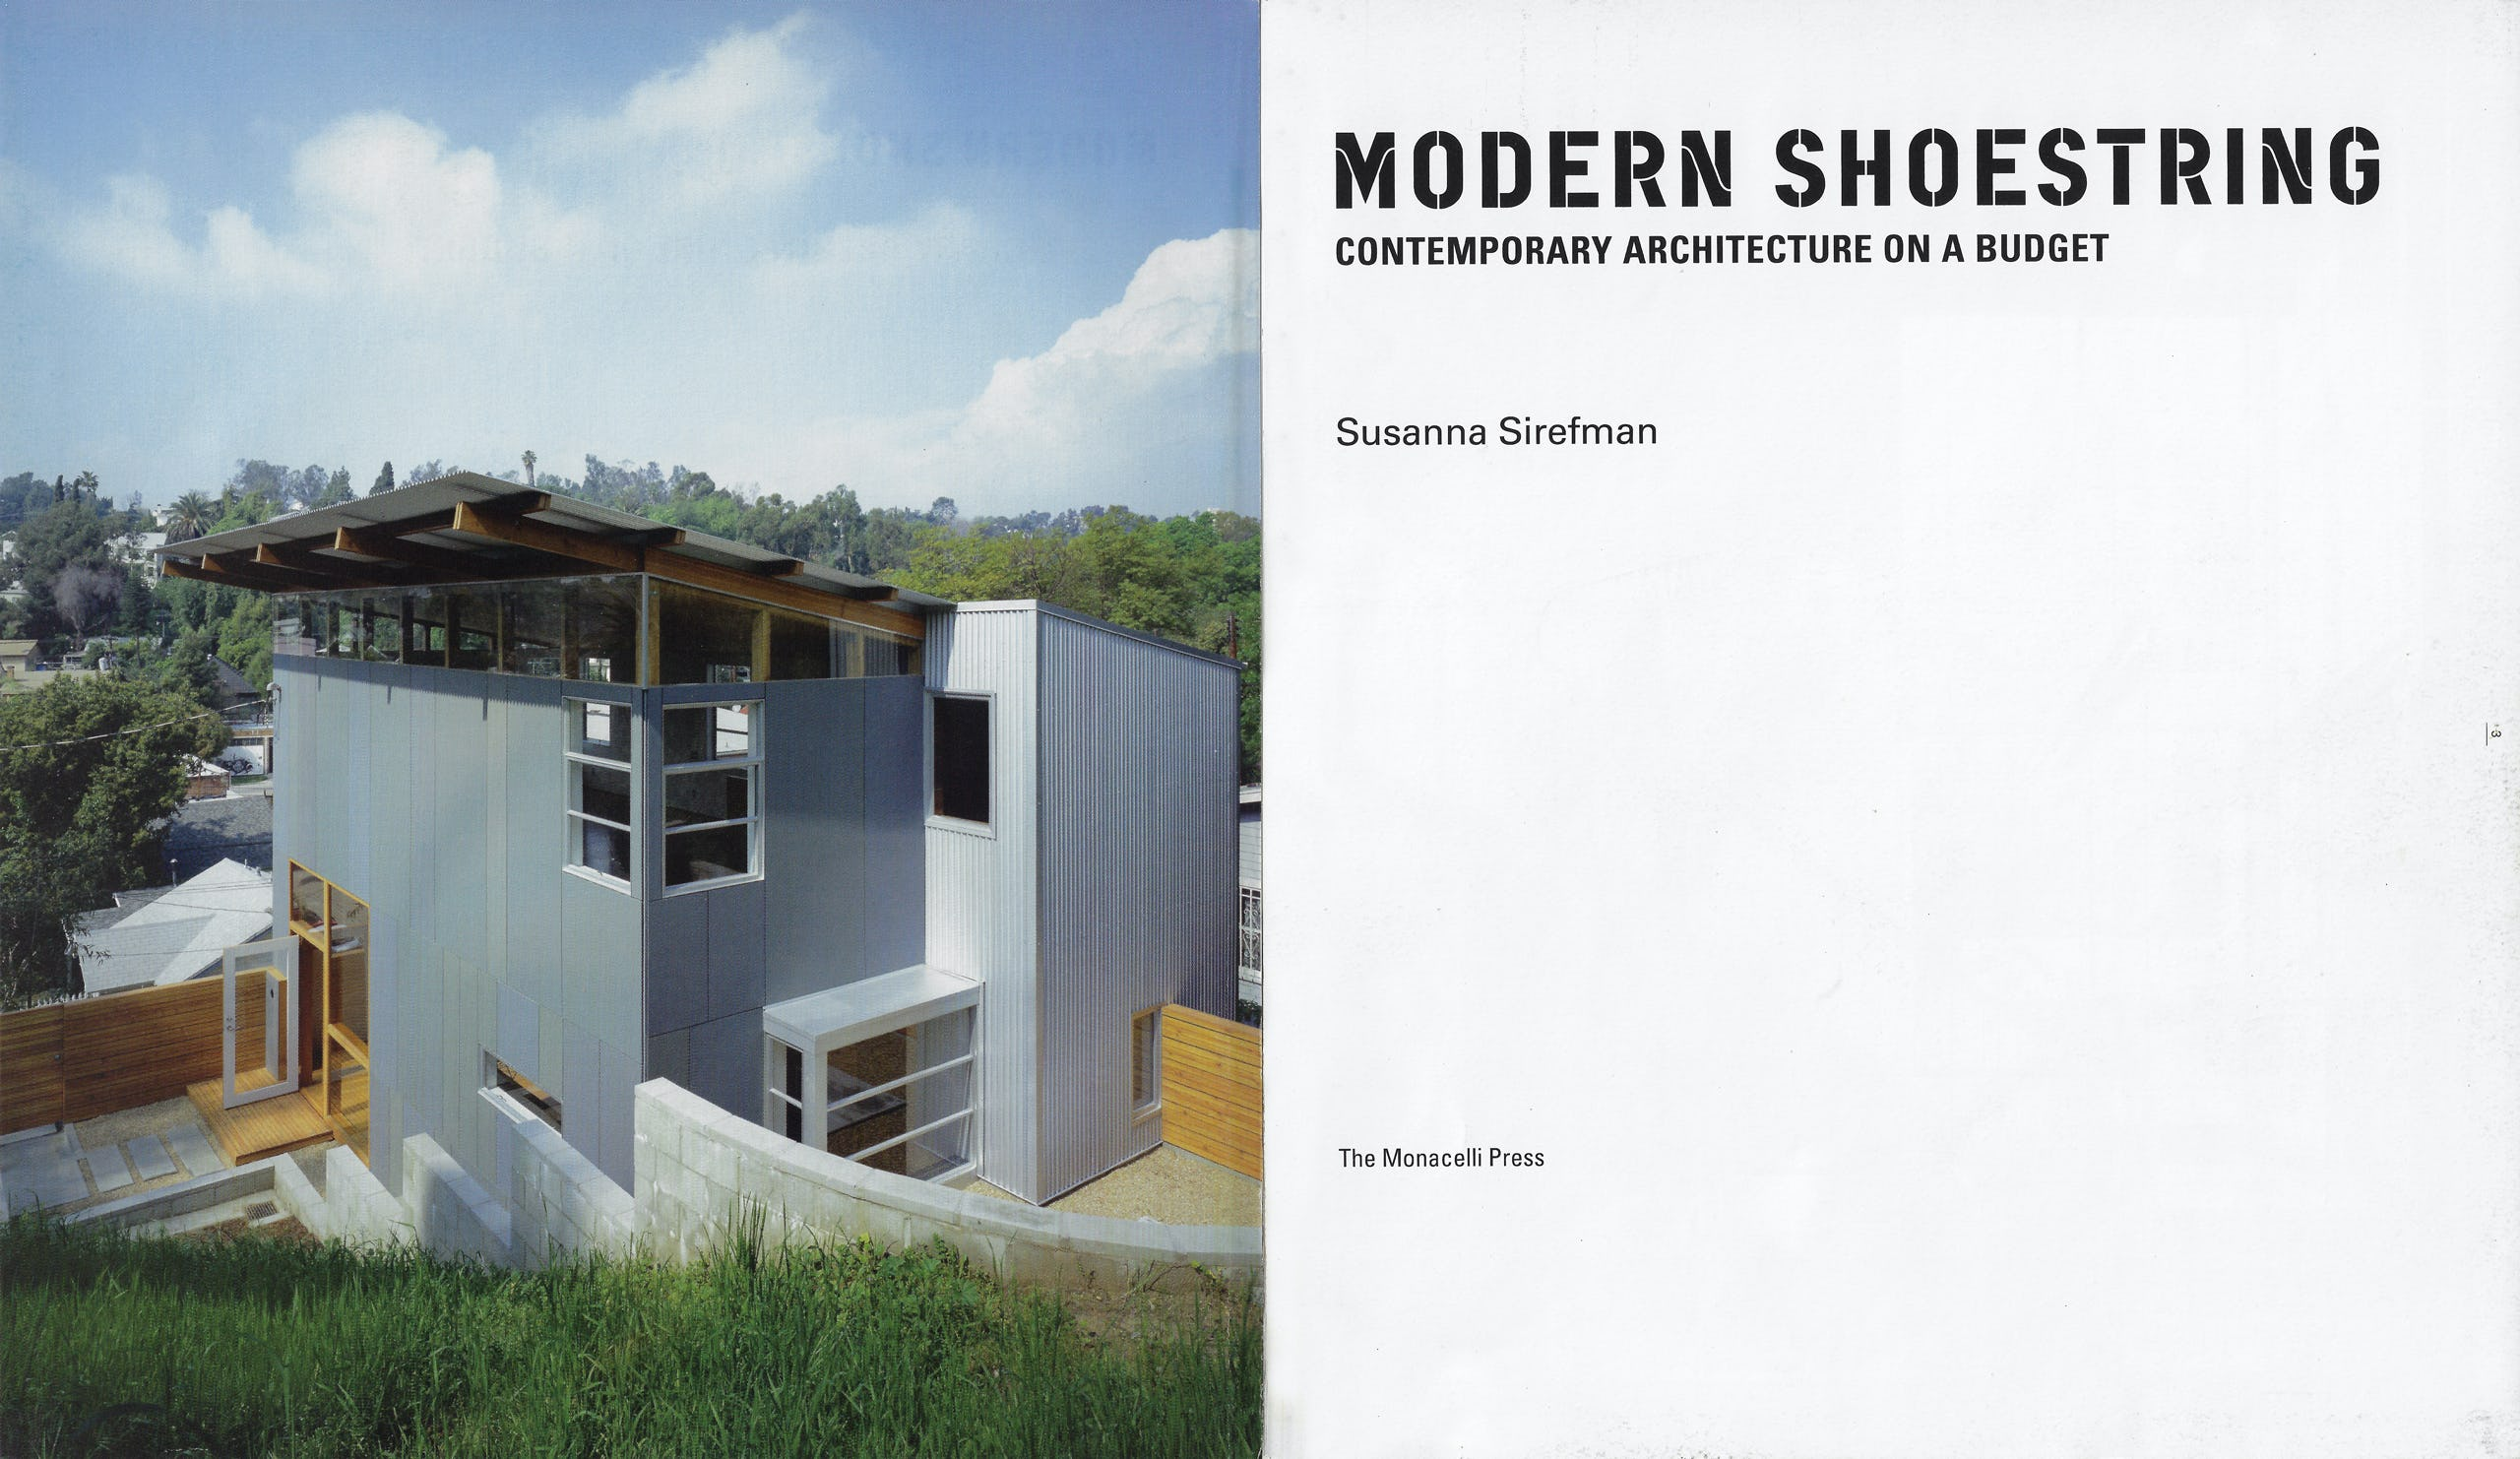 Modern shoestring title page